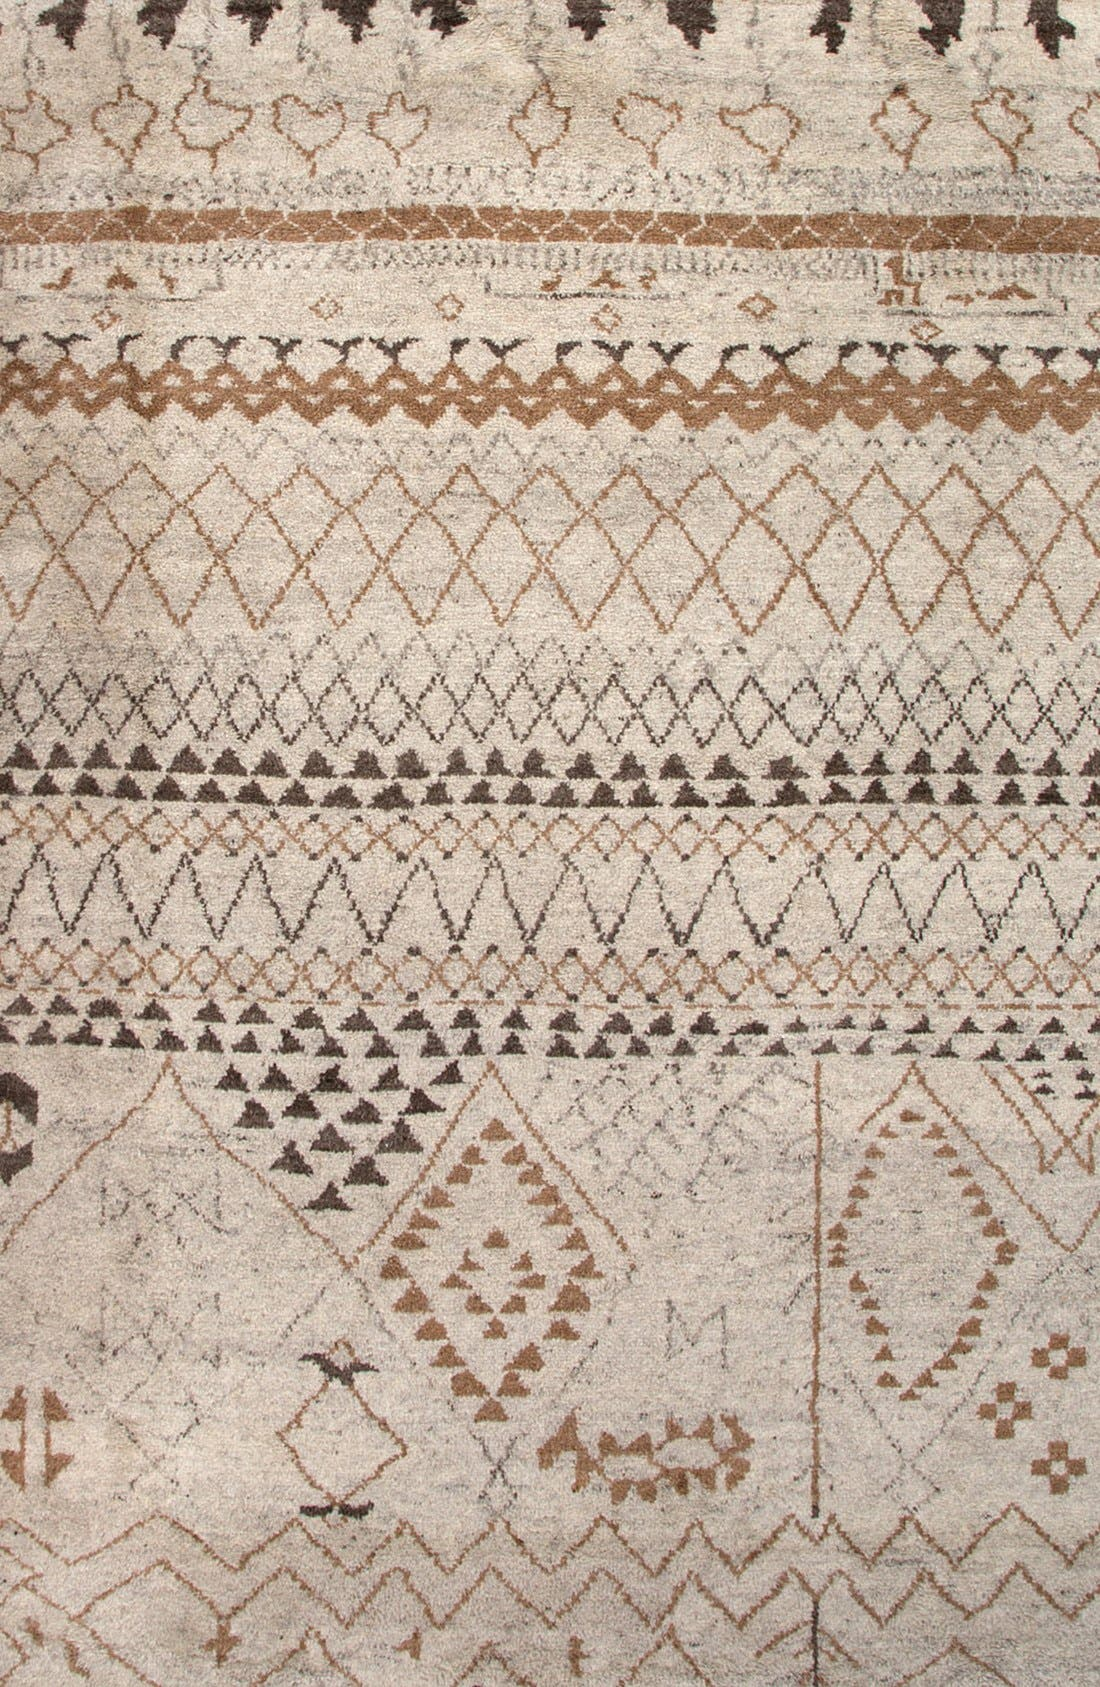 'Zola Zag' Wool Area Rug,                             Main thumbnail 1, color,                             IVORY/ TAUPE